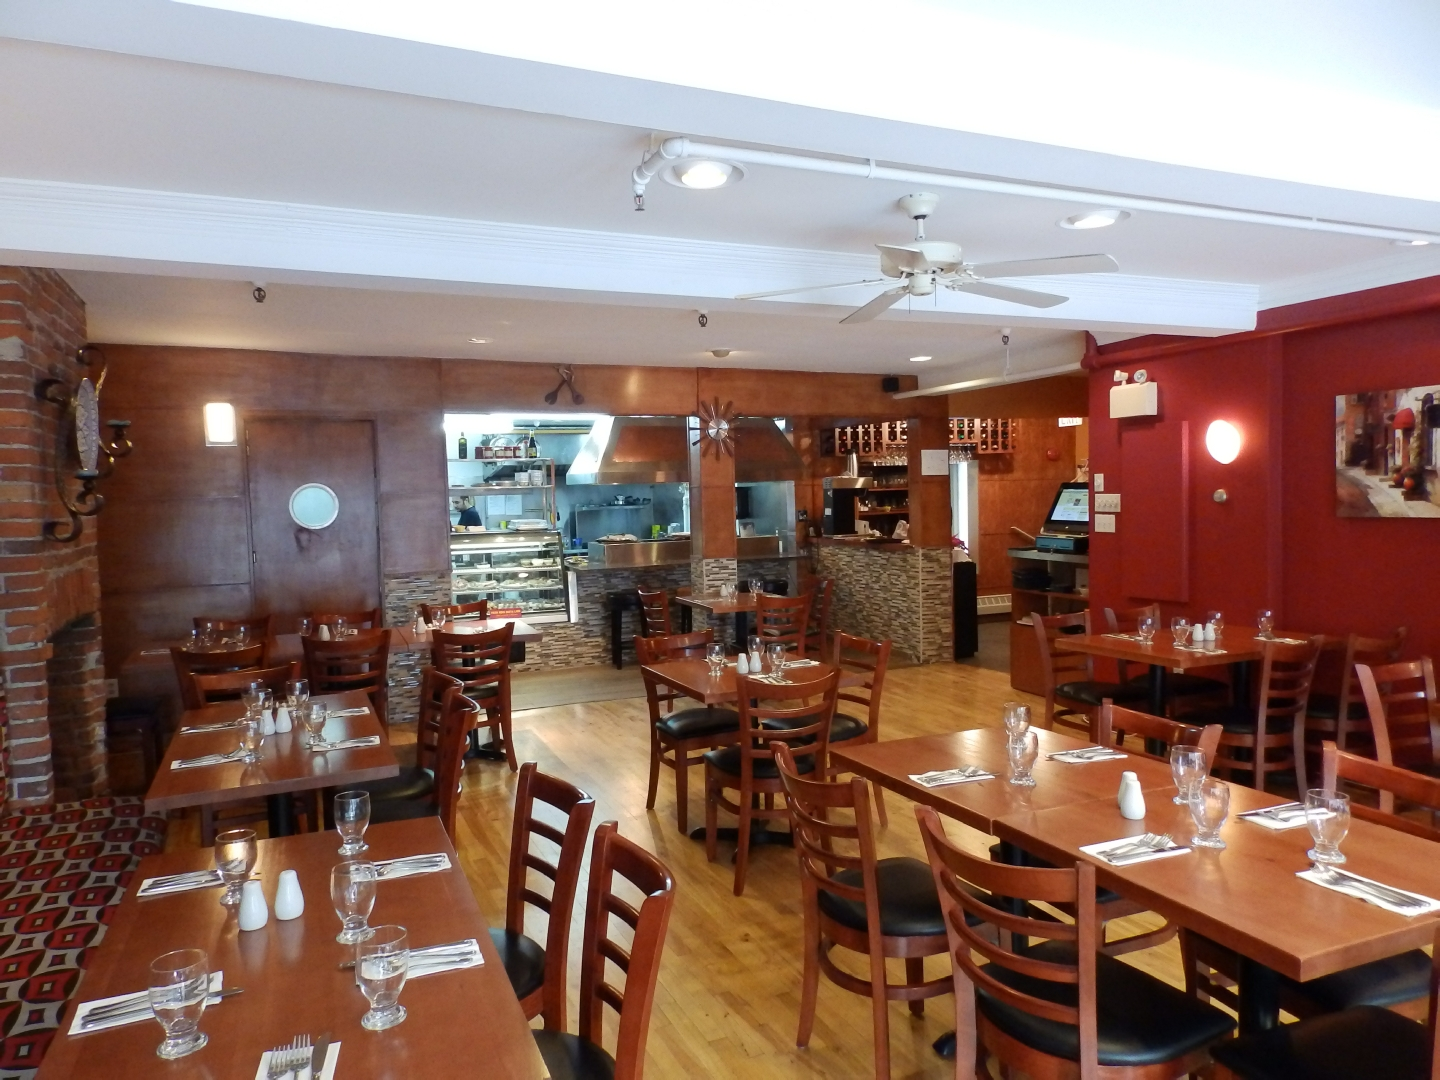 Restaurant furniture canada helps efendy mediterranean